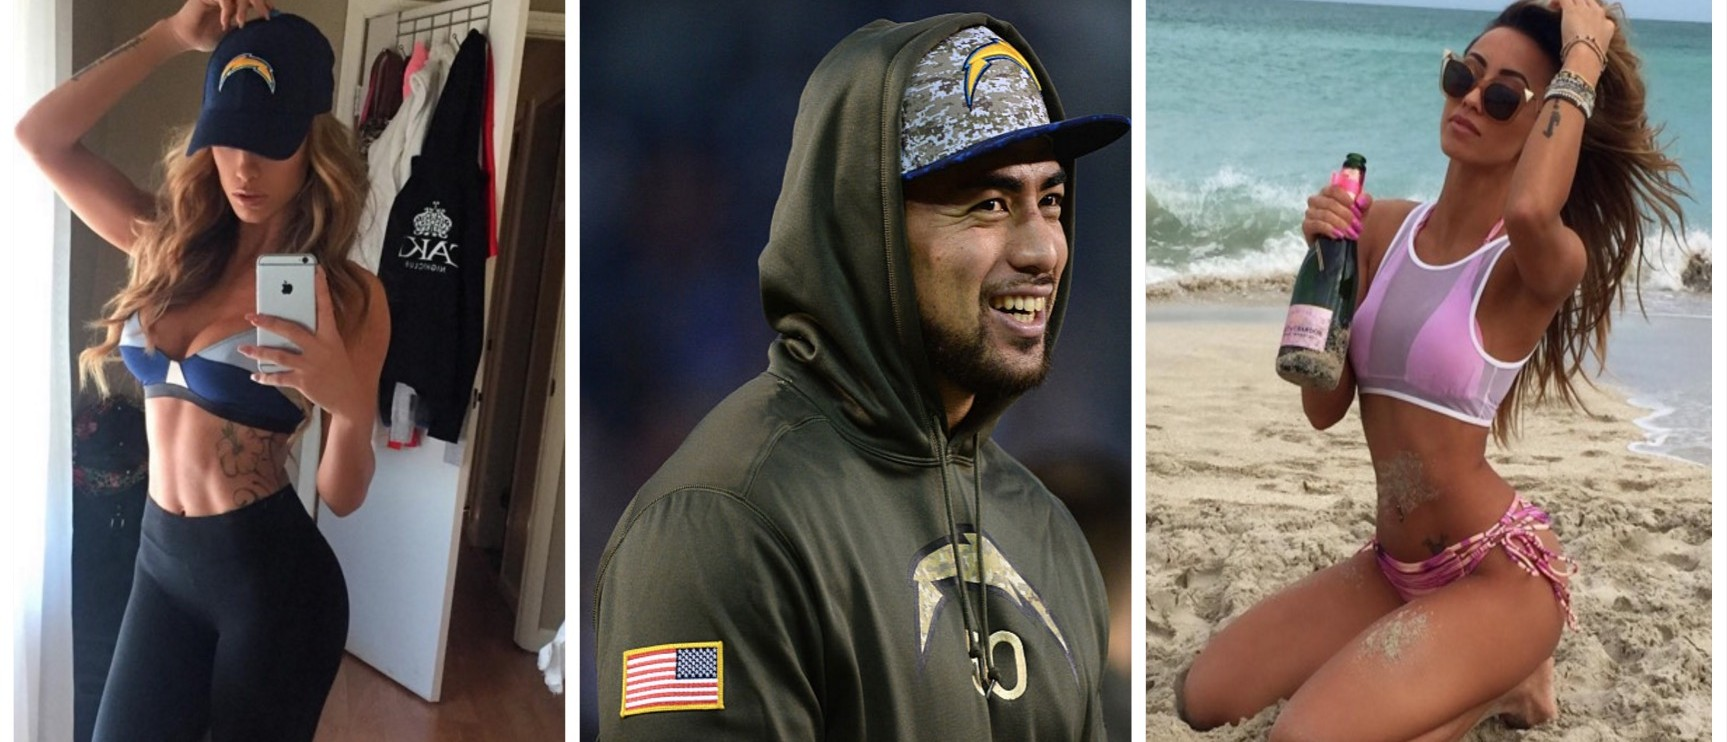 Here's Manti Te'o's -- Probably, Totally Real This Time -- Girlfriend (Instagram/Getty Images)